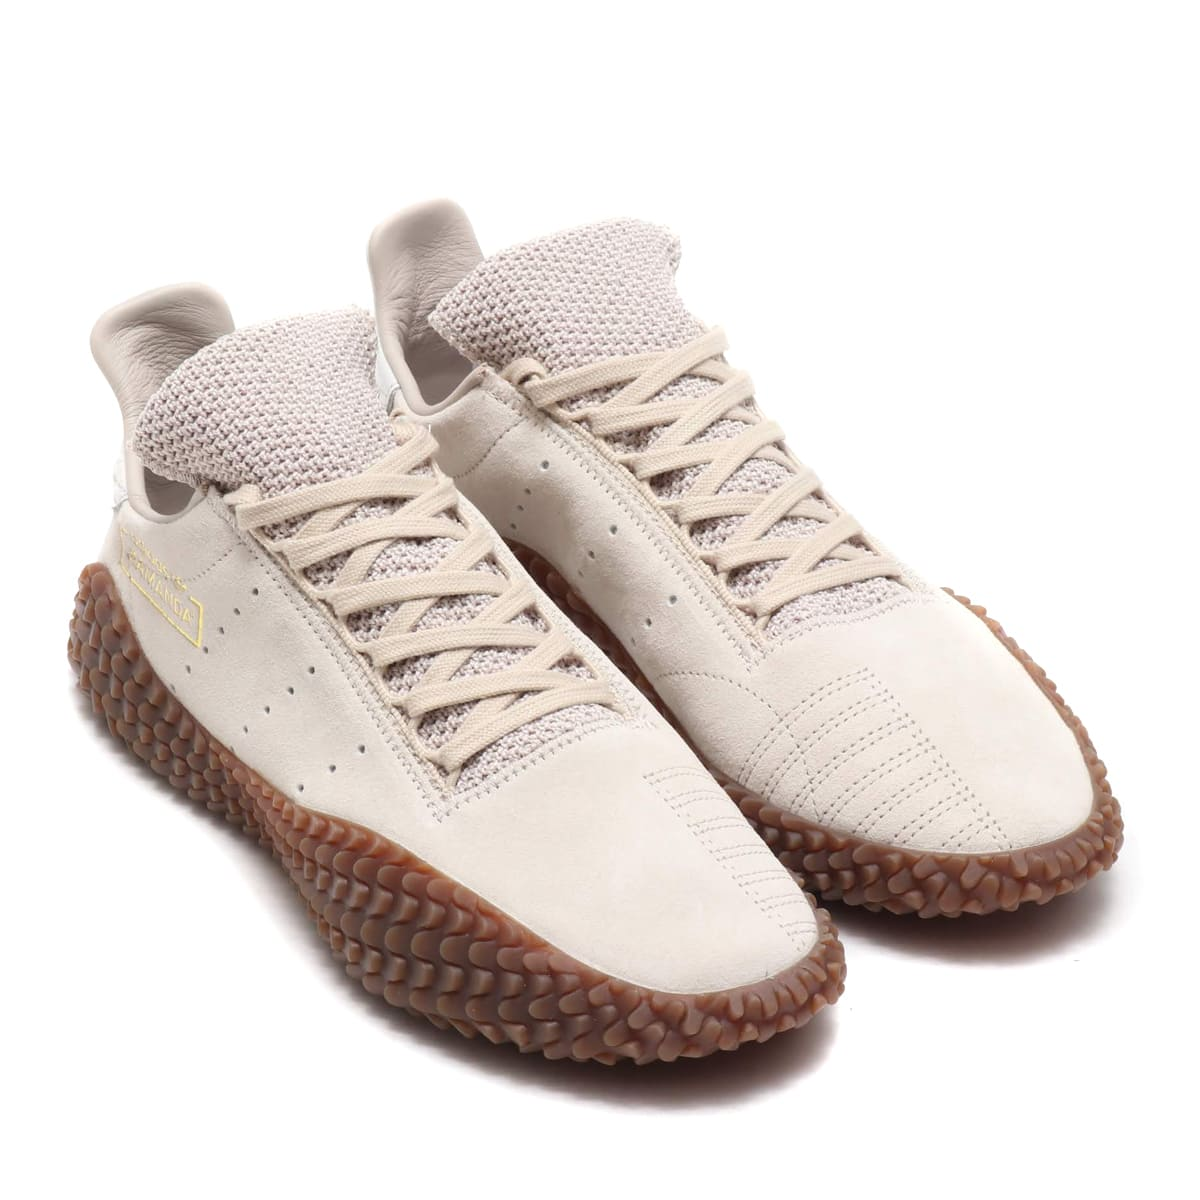 adidas Originals KAMANDA 01 CLEAR BROWN/CLEAR BROWN/CRYSTAL WHITE 18FW-I_photo_large